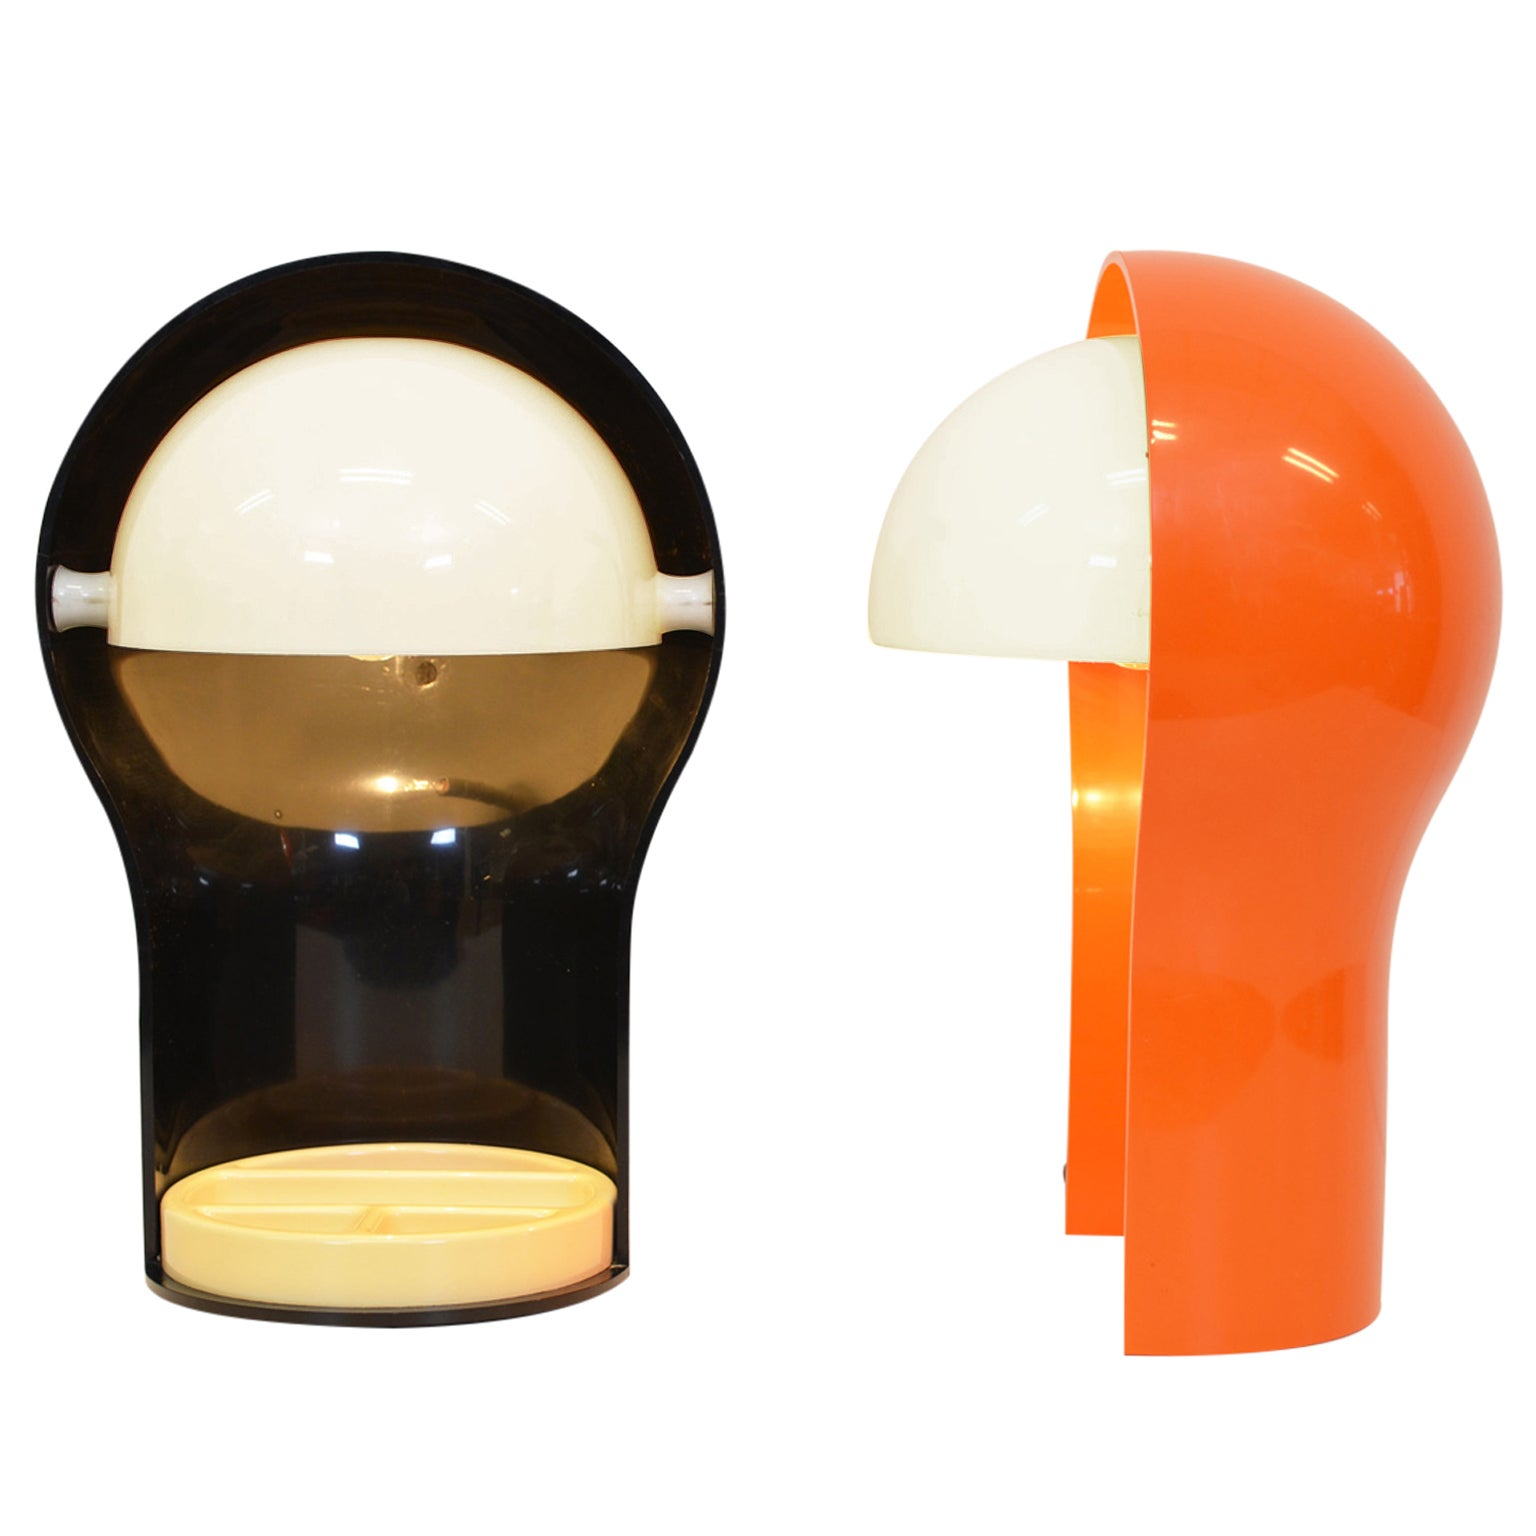 Sixties Telegono Lamp by Vico Magistretti for Artemide, Italy